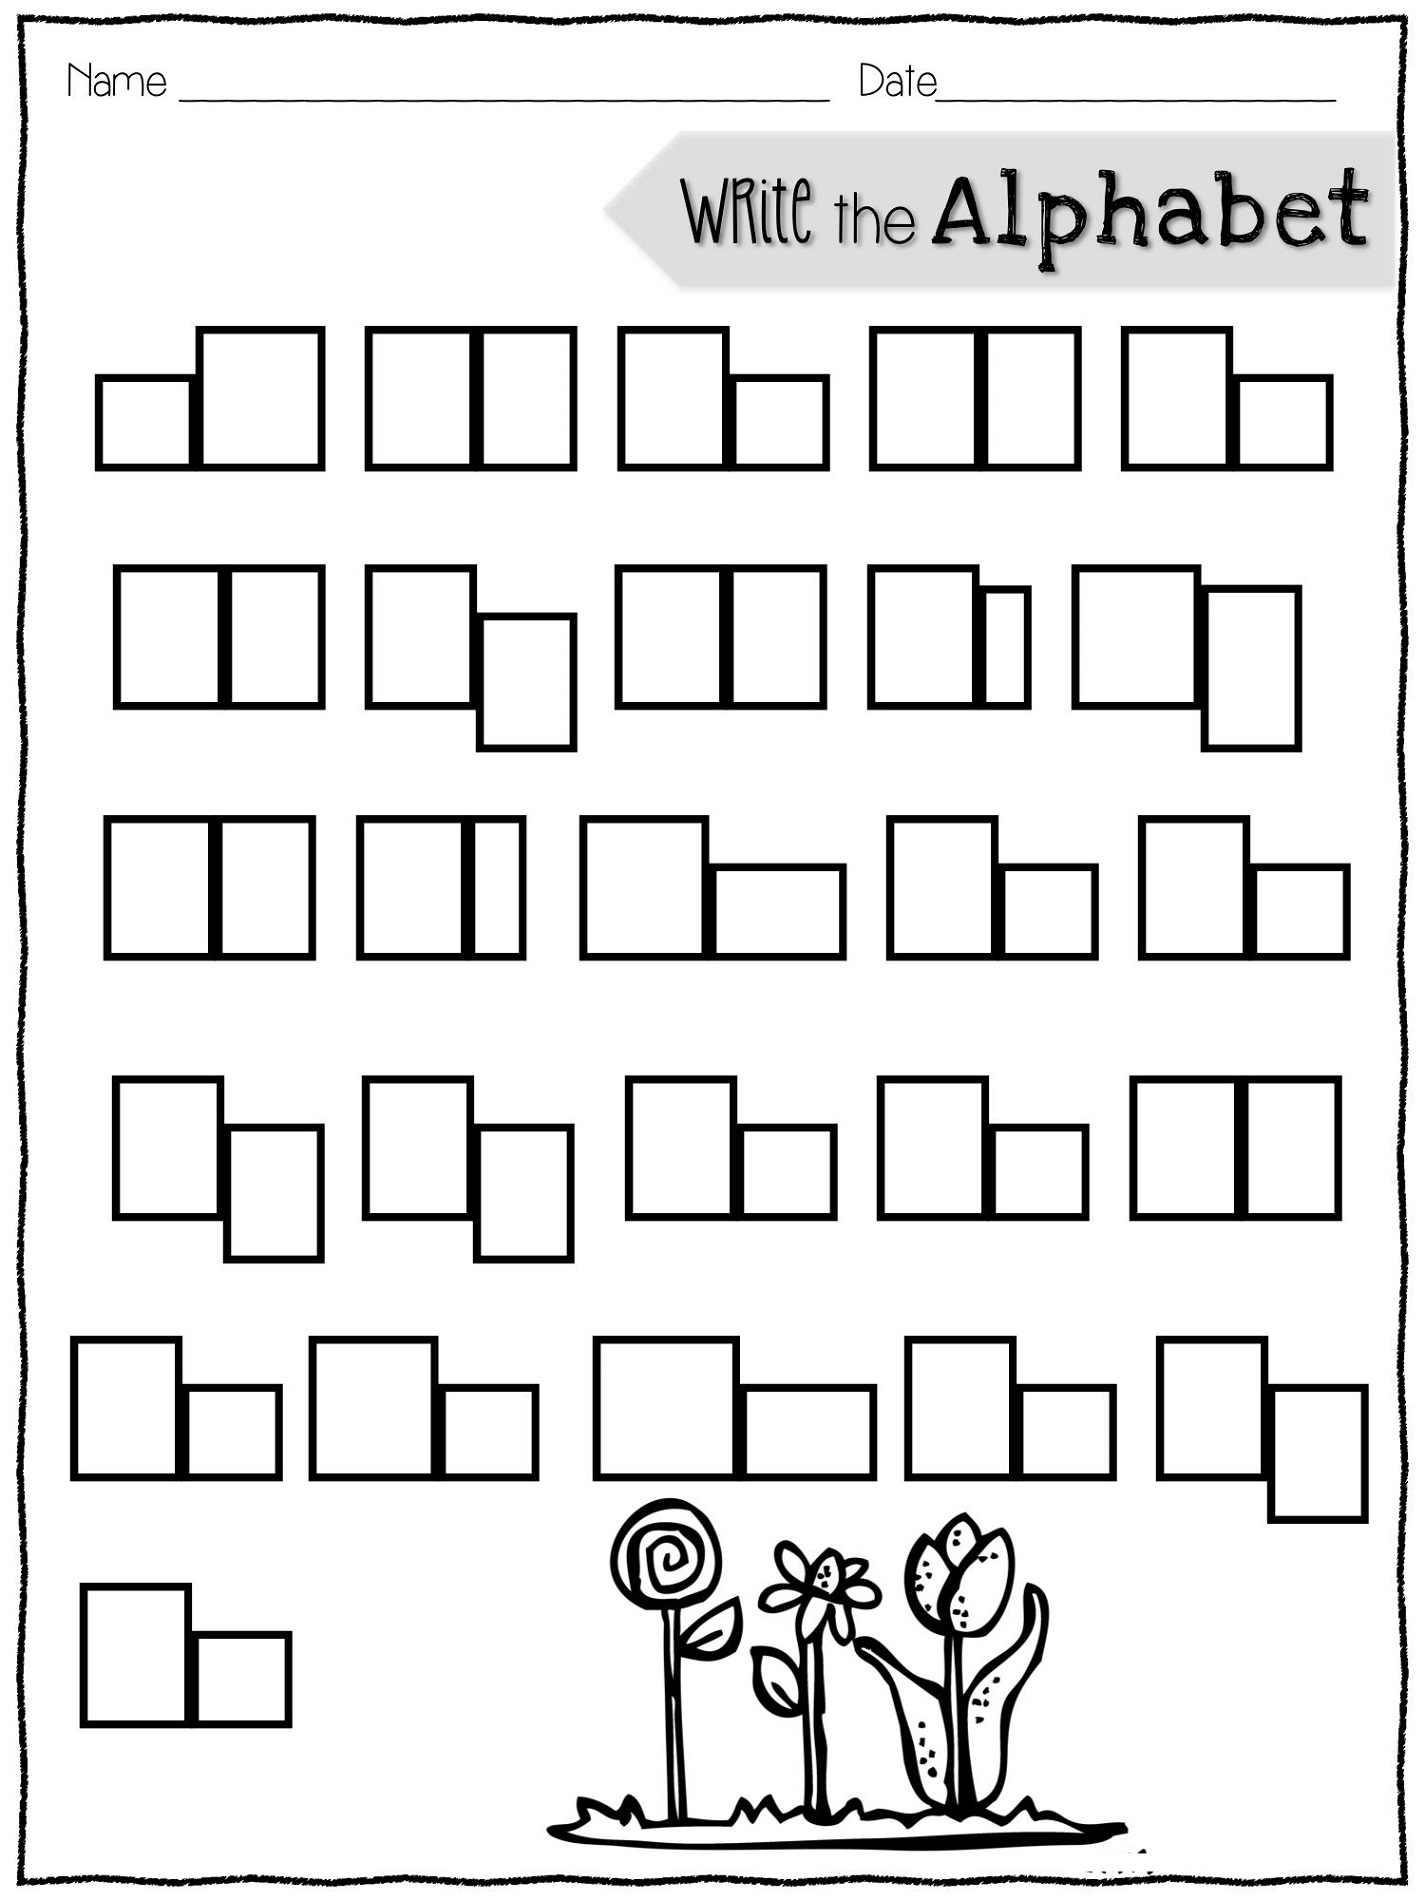 Fun Worksheets For Elementary Students Alphabet